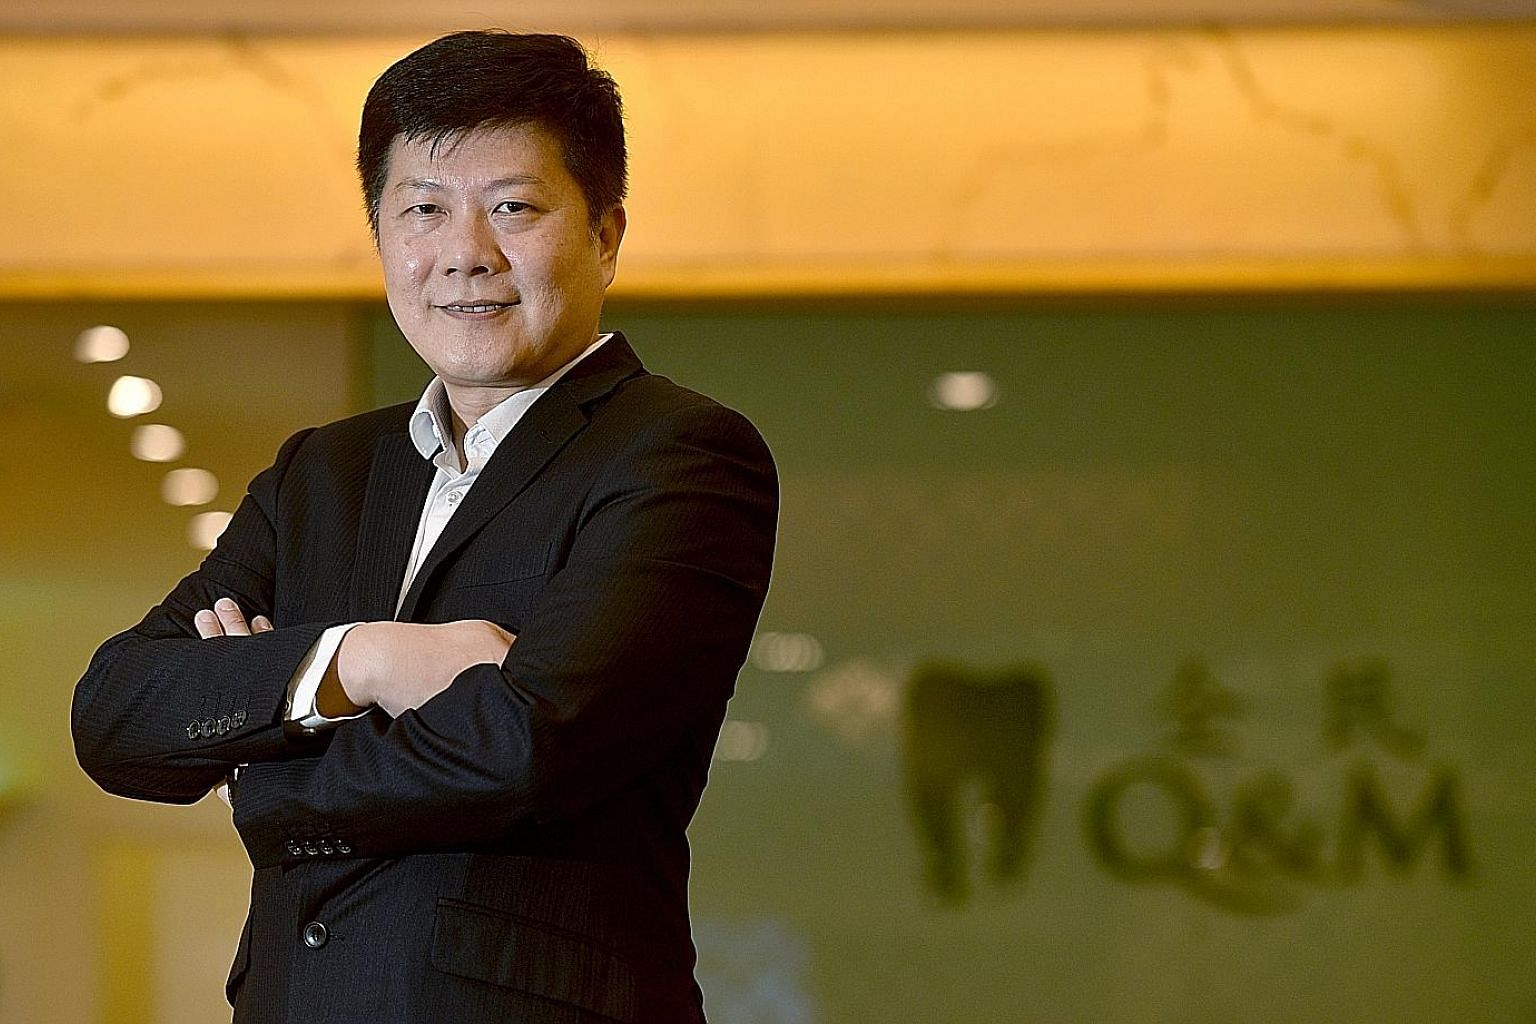 Q&M chief executive Ng Chin Siau says his firm hopes to revolutionise the landscape of dentistry in Singapore.